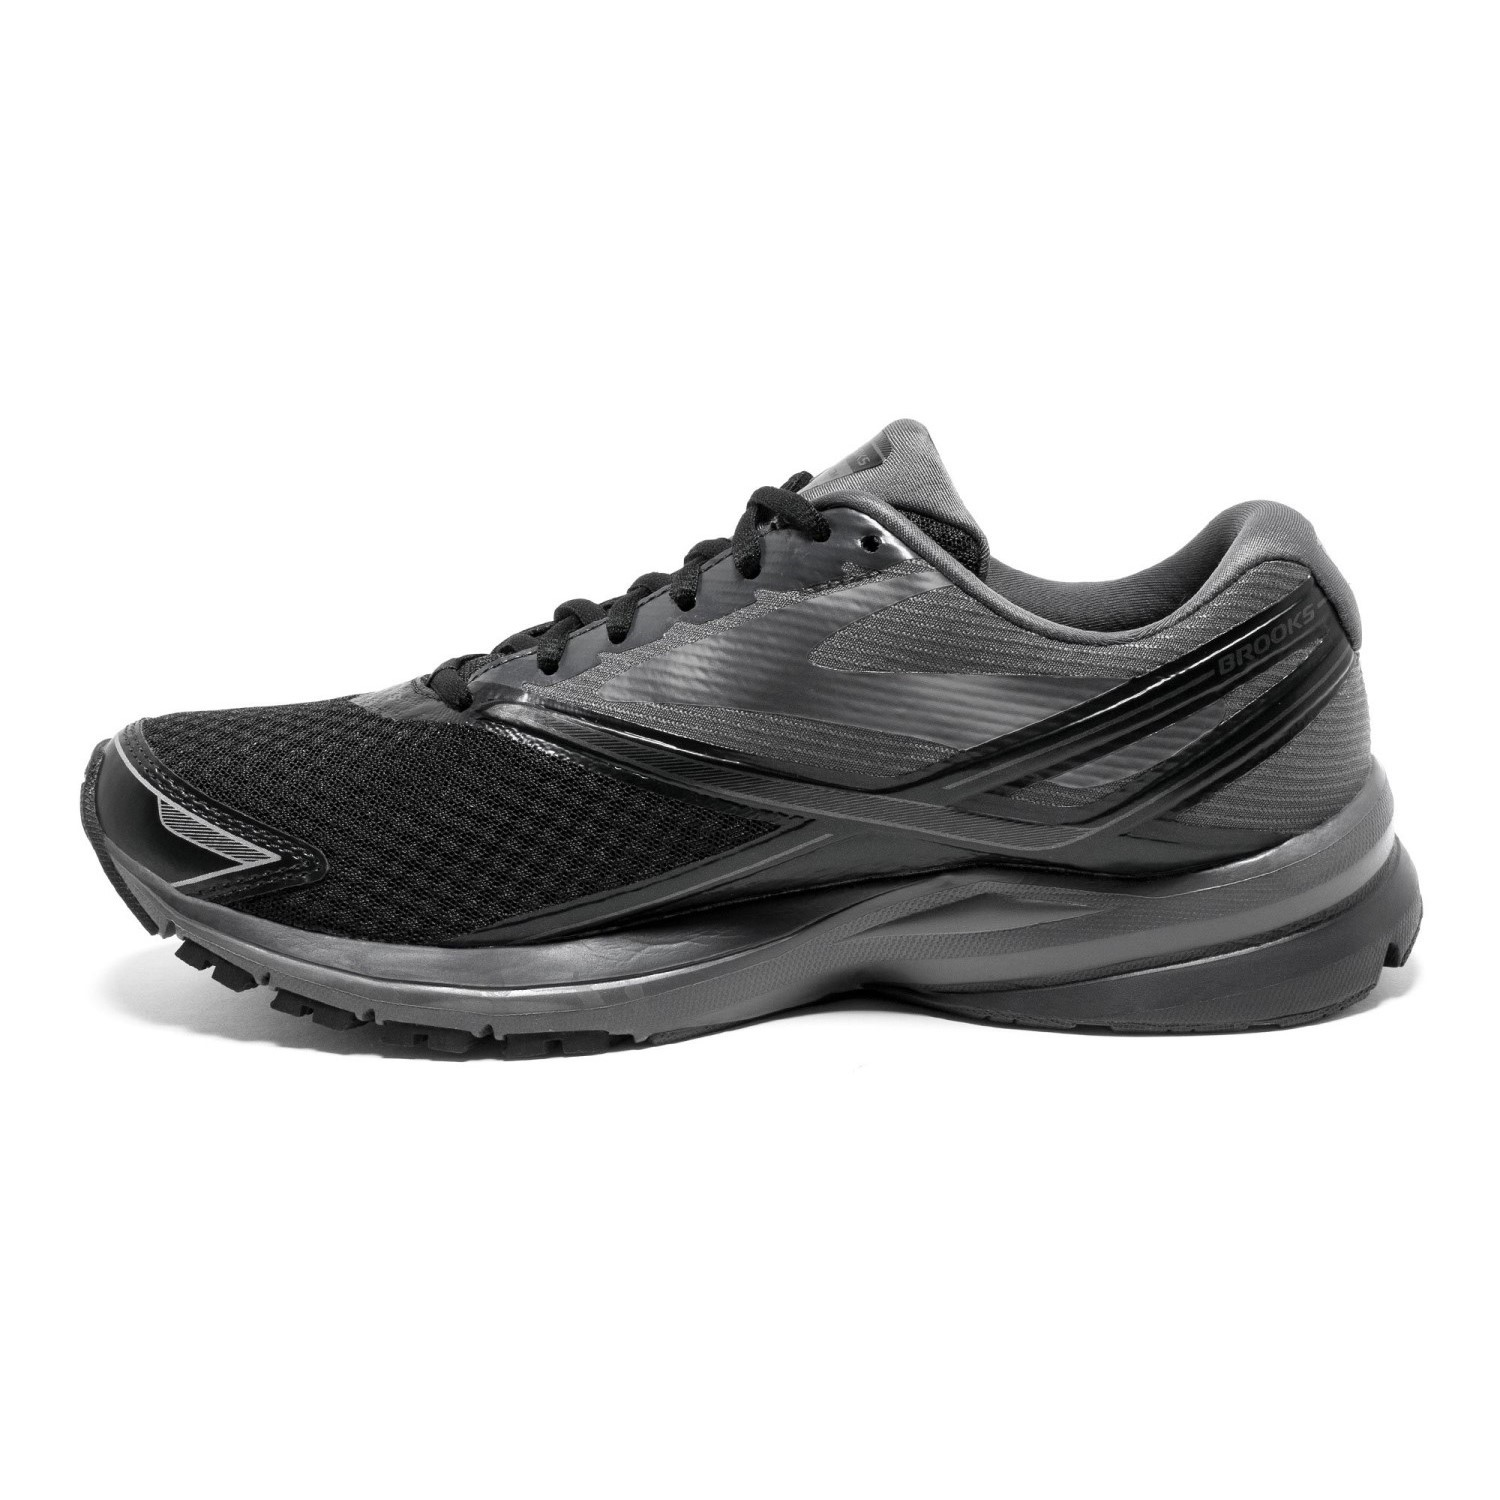 3c99f0d7a0cb7 Brooks Launch 4 - Mens Running Shoes - Black Anthracite Silver ...